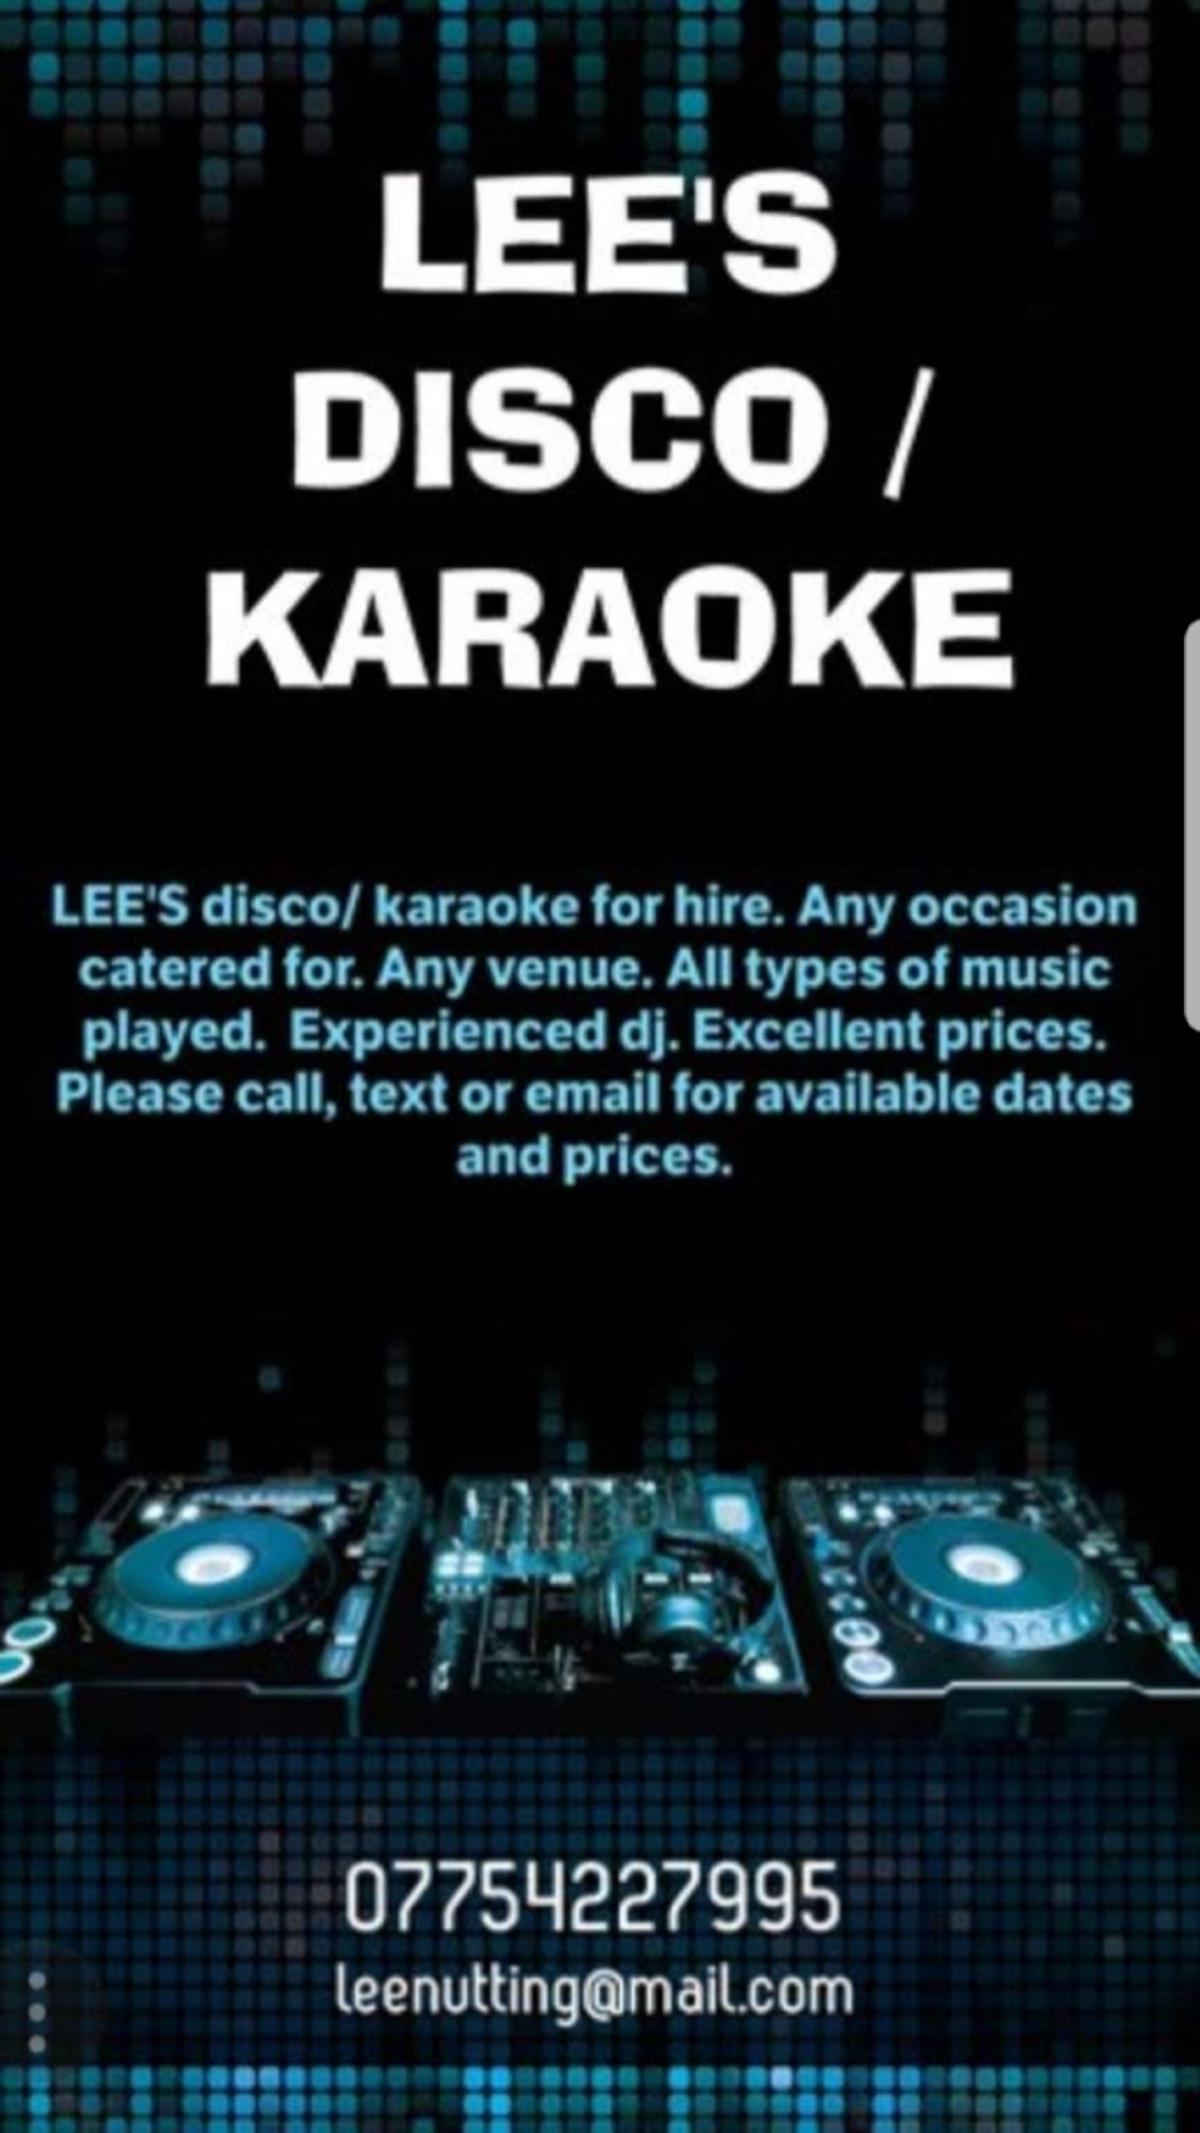 LEE'S DISCO/KARAOKE FOR HIRE in LE2 Leicester for free for